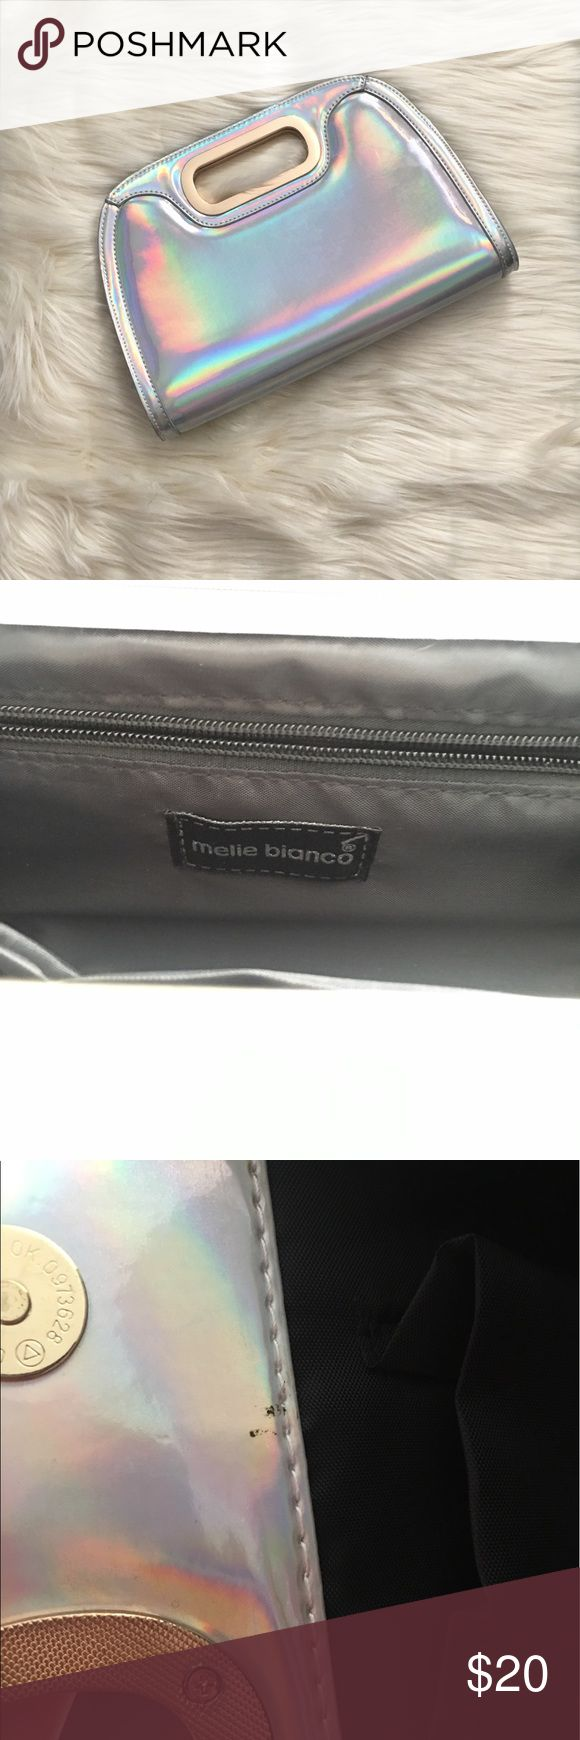 Melie Bianco vegan leather holographic clutch Melie Bianco vegan leather holographic clutch. Scuffs as shown in pictures. Don't like my price? Make an offer. Melie Bianco Bags Clutches & Wristlets